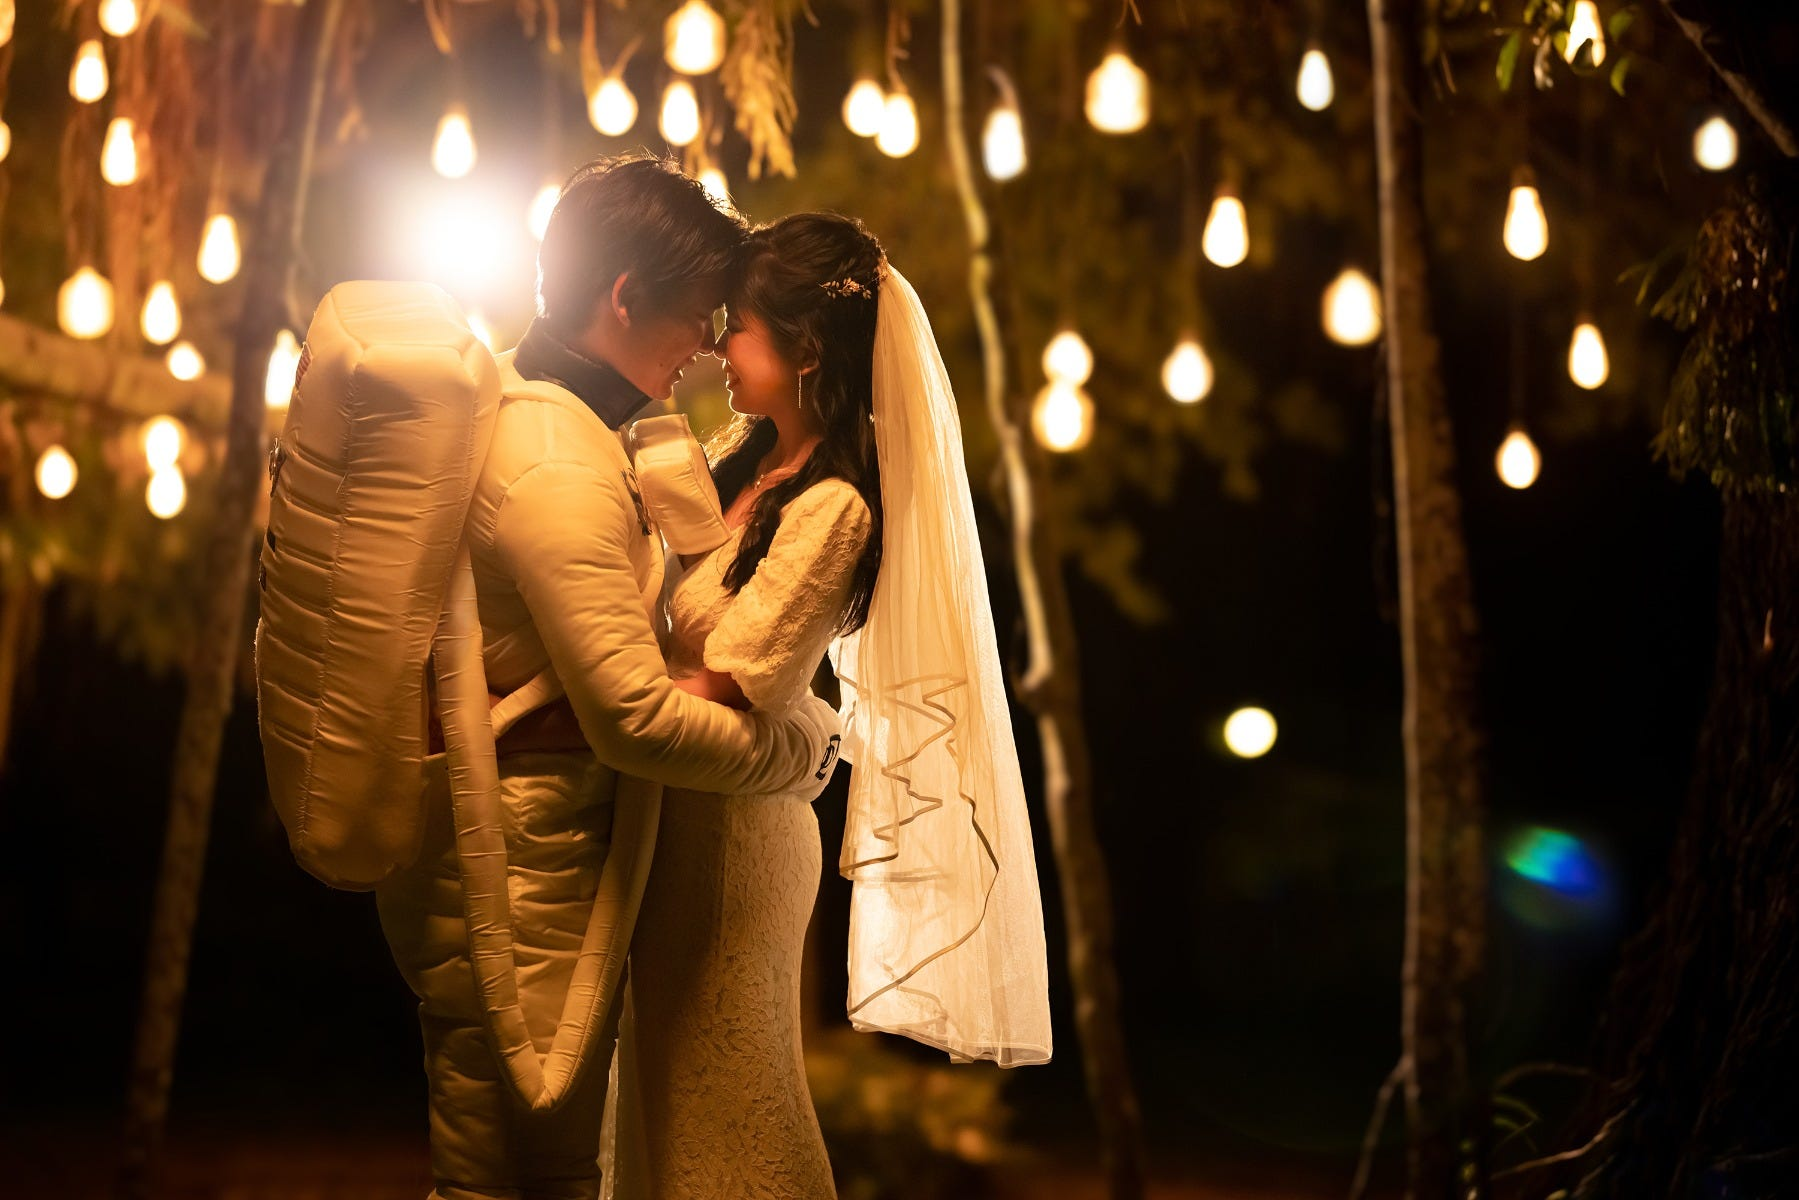 Romantic night shot on Canon EOS R6, demonstrating the versatility of light in any photoshoot